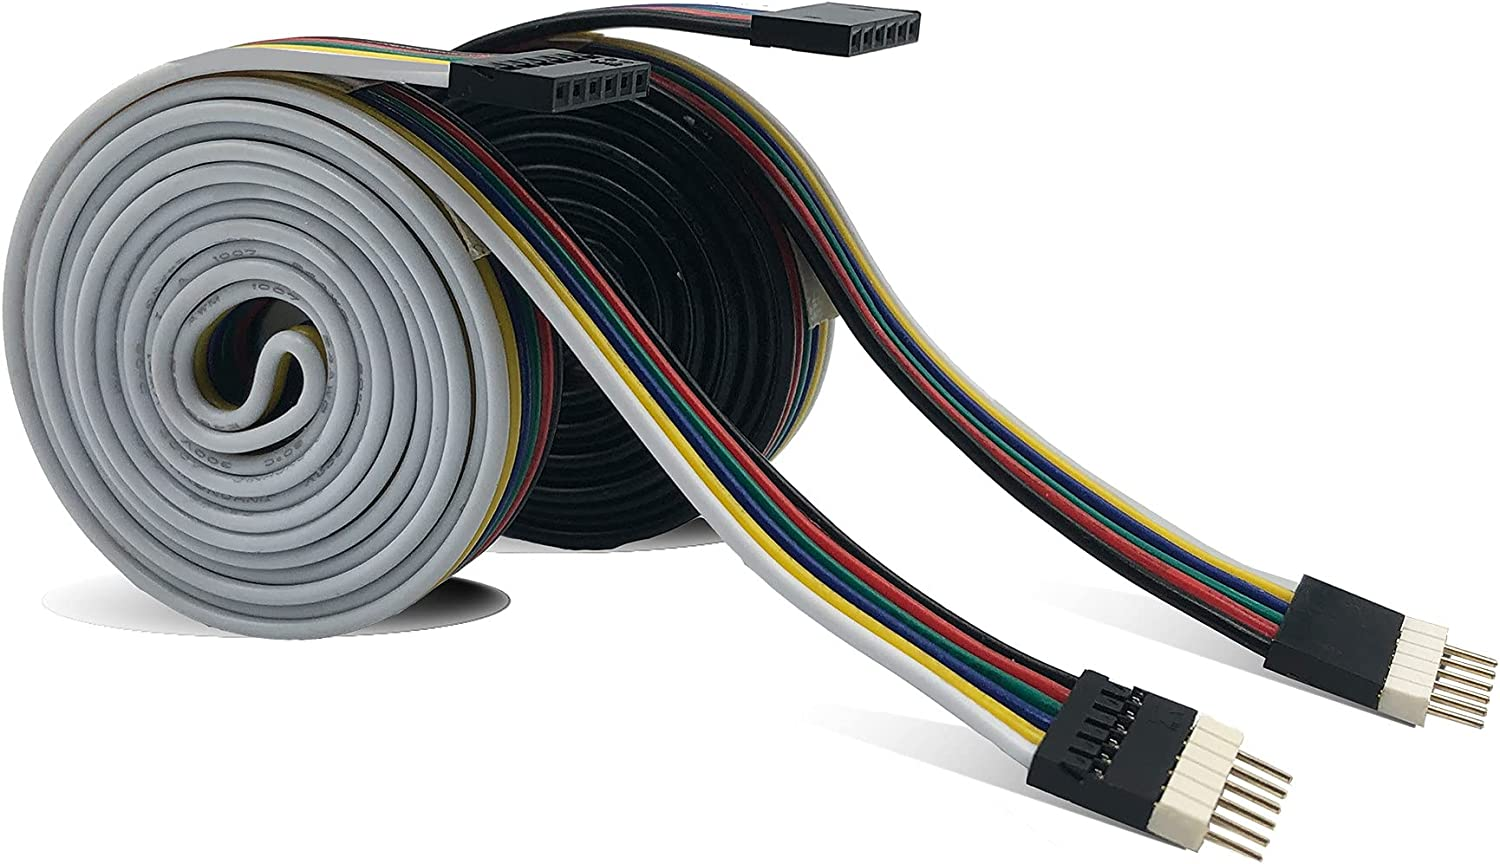 6Pin LED Max 79% OFF Extension Cable for Philips service Hue LightStrip Plus V3 and